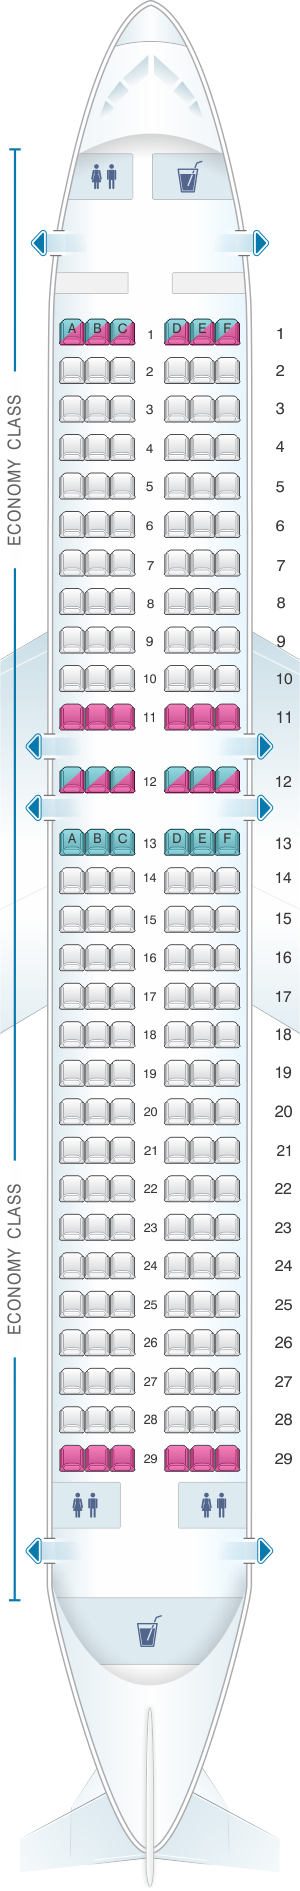 Seat map for Bulgarian Air Charter Airbus A320